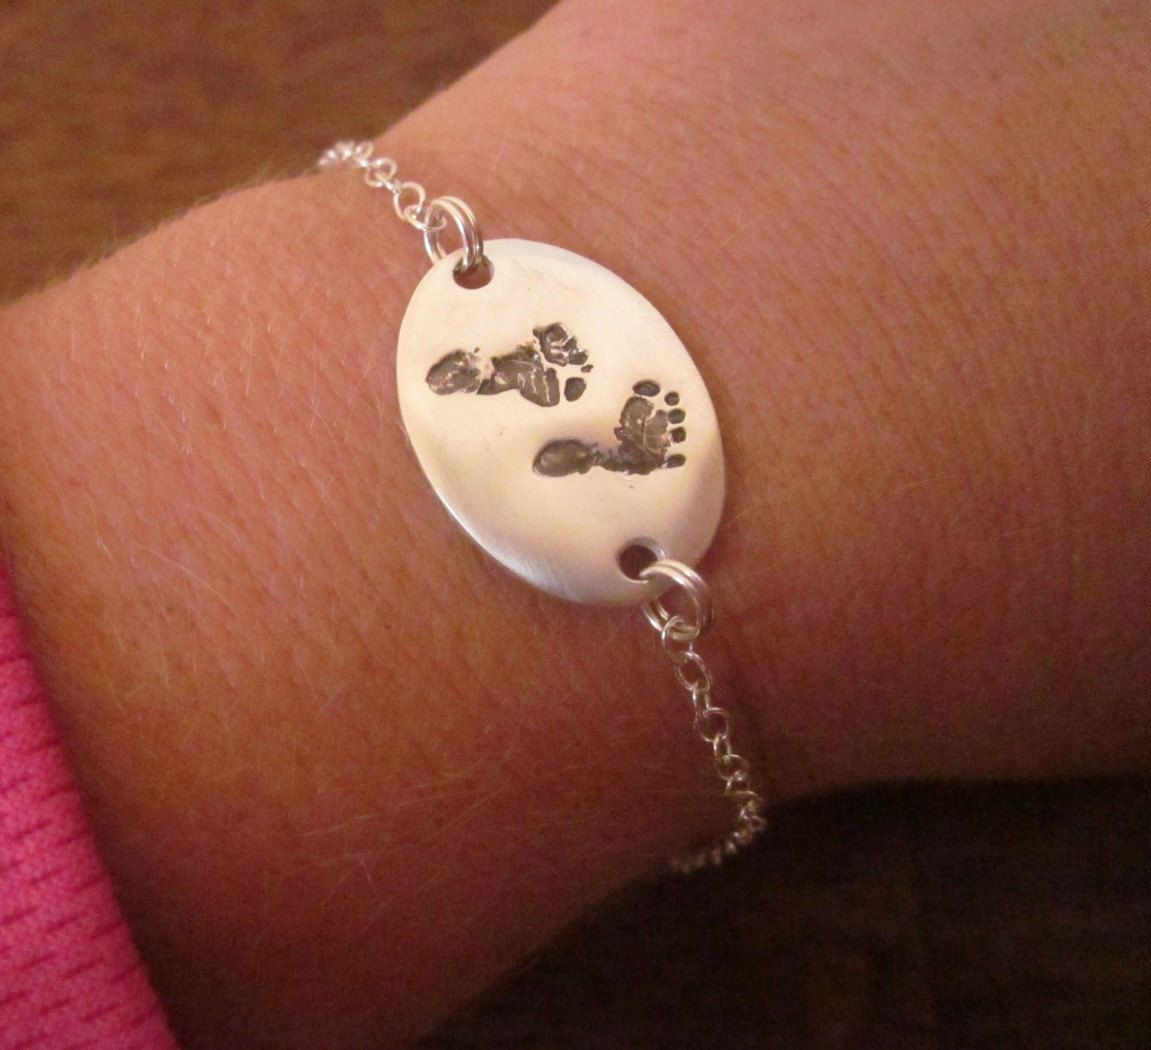 5d19d2dcbb010 TWO SIDED baby footprint bracelet made from your baby's footprint ...